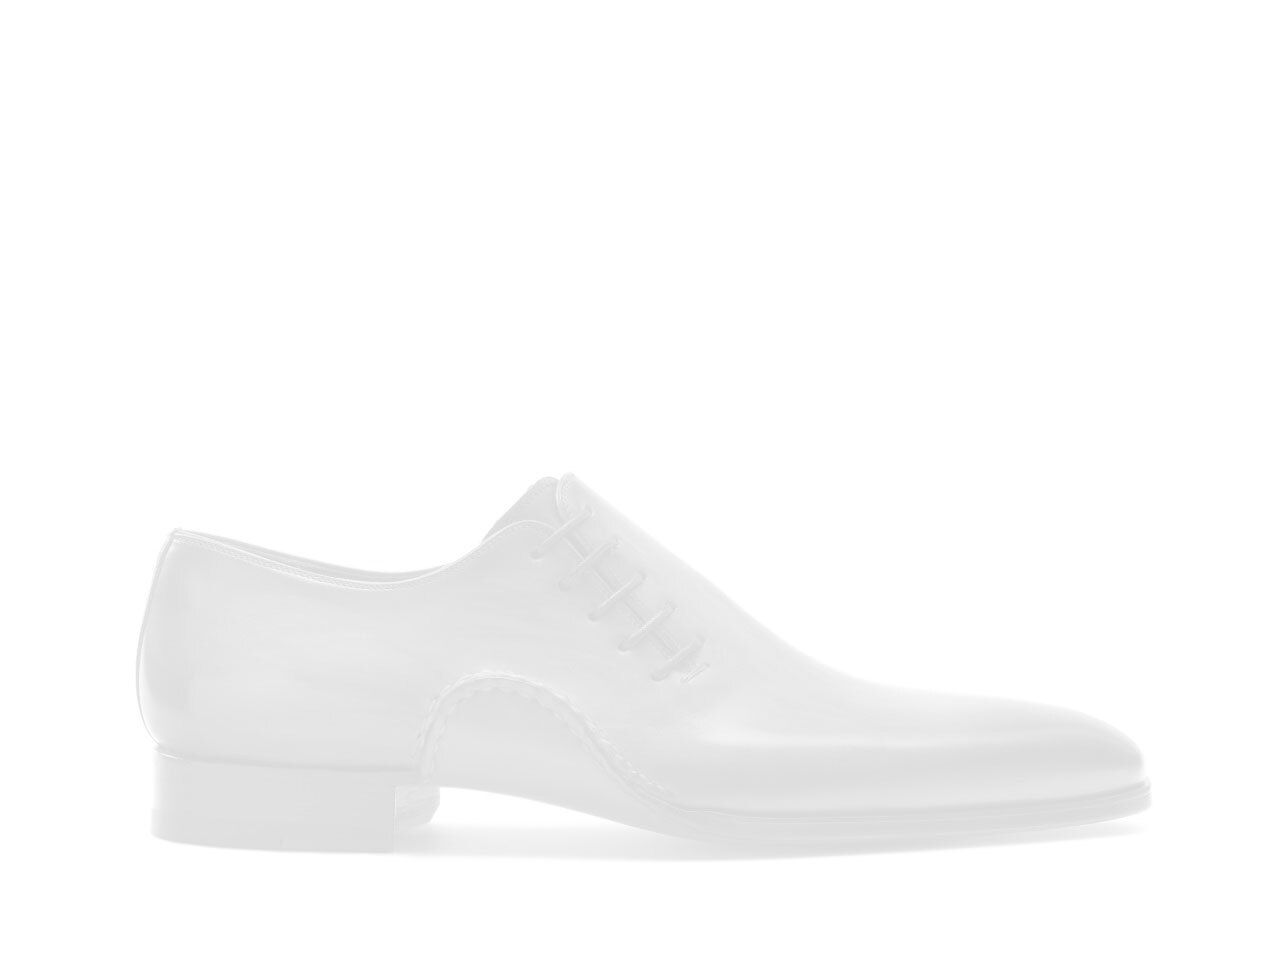 Sole of the Magnanni Nico Grey Men's Sneakers